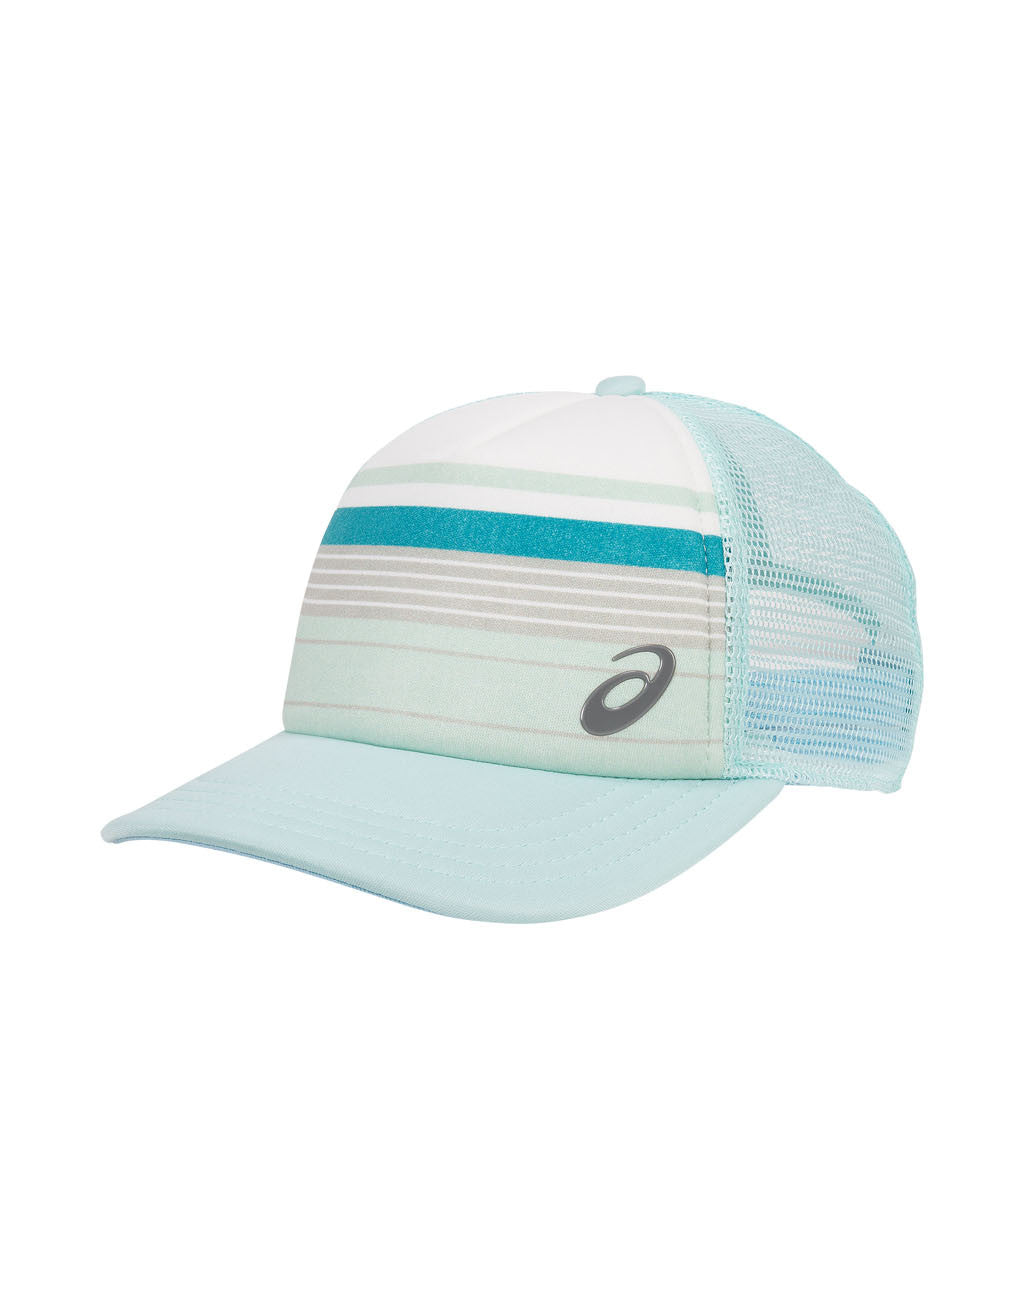 ASICS Straight Edge Trucker Hat (Women's)O/S_master_image